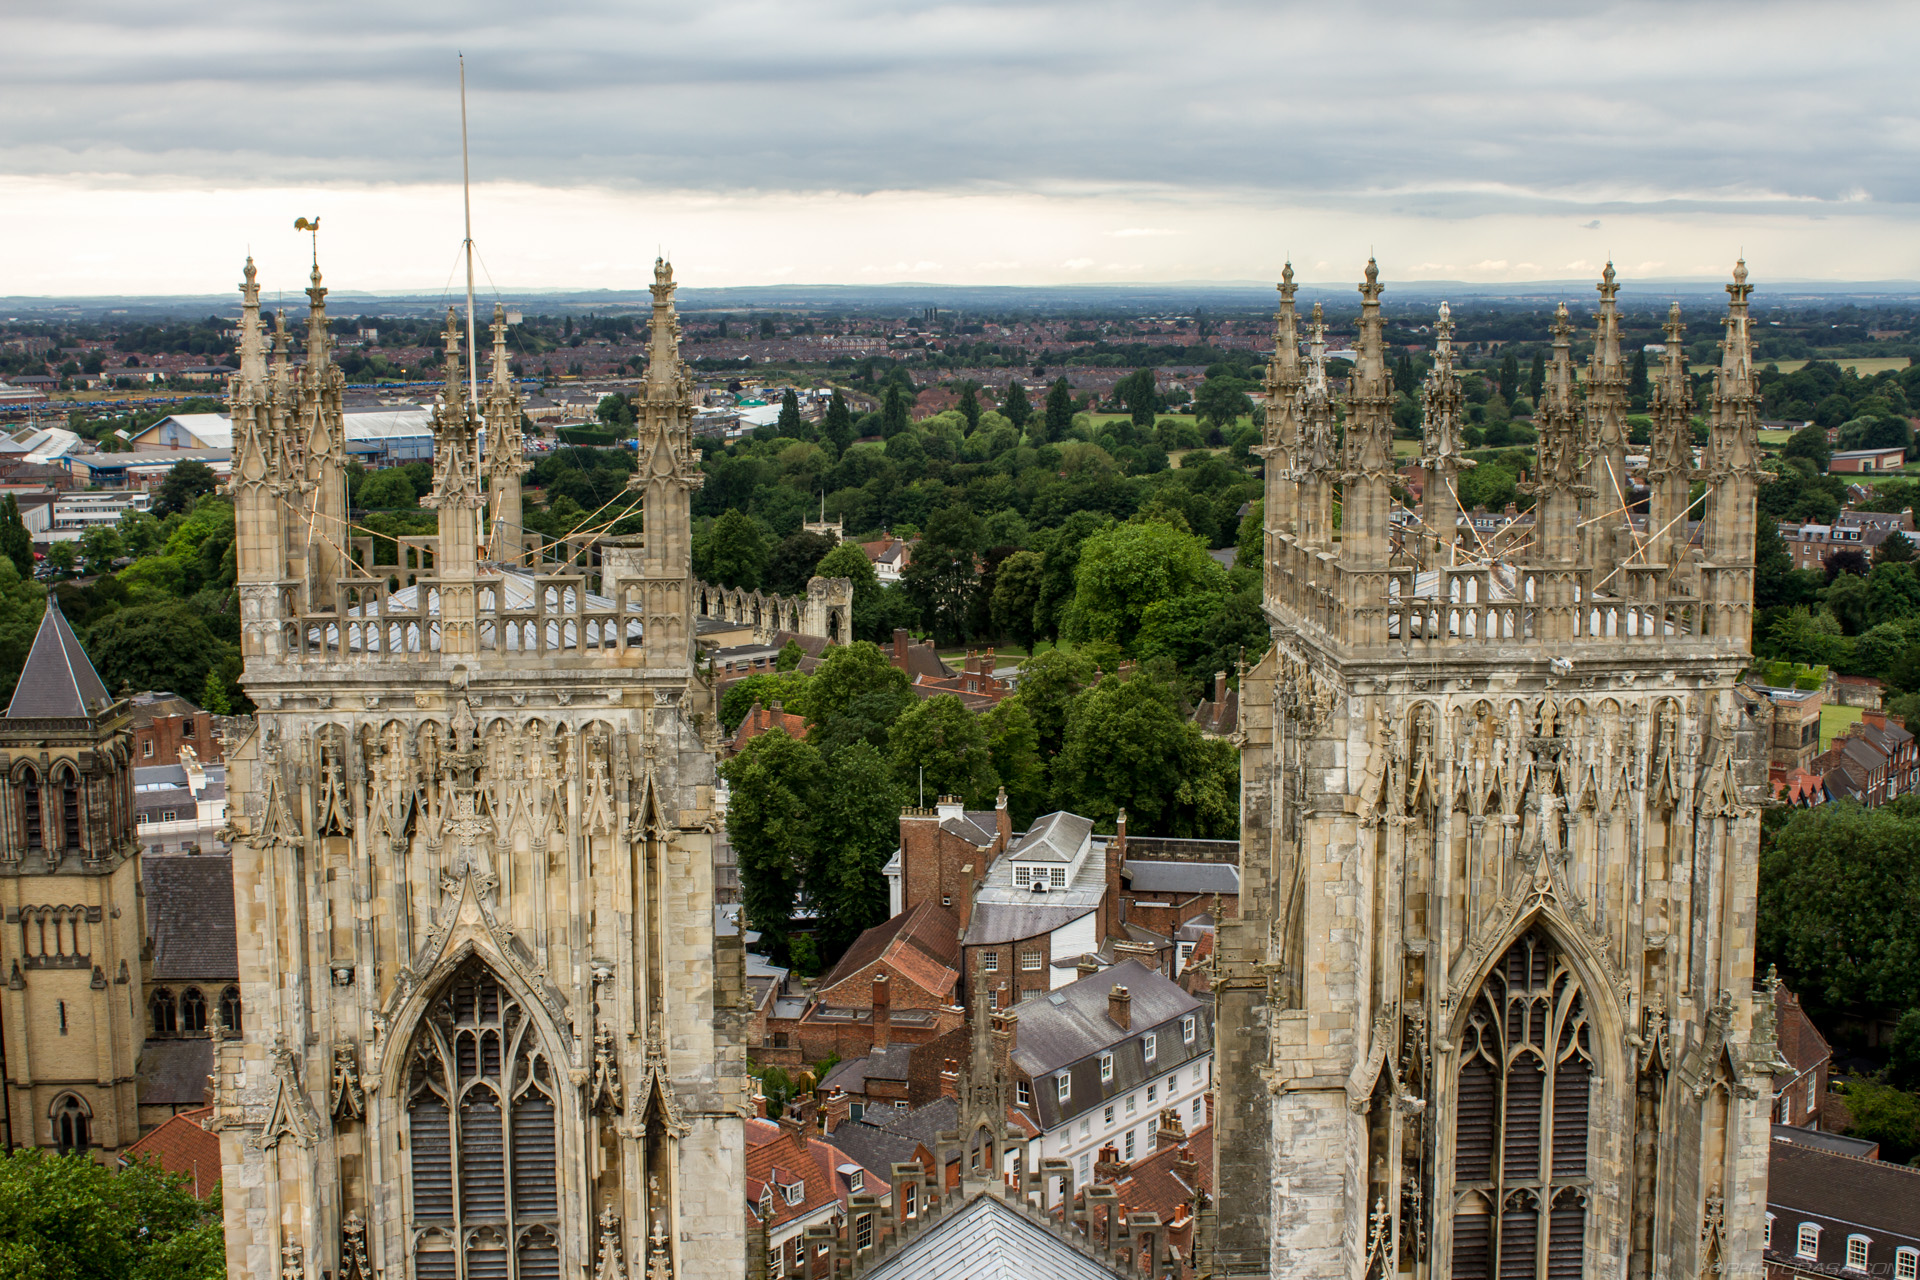 http://photorasa.com/places/yorkminster-cathedral/attachment/york-twin-towers/